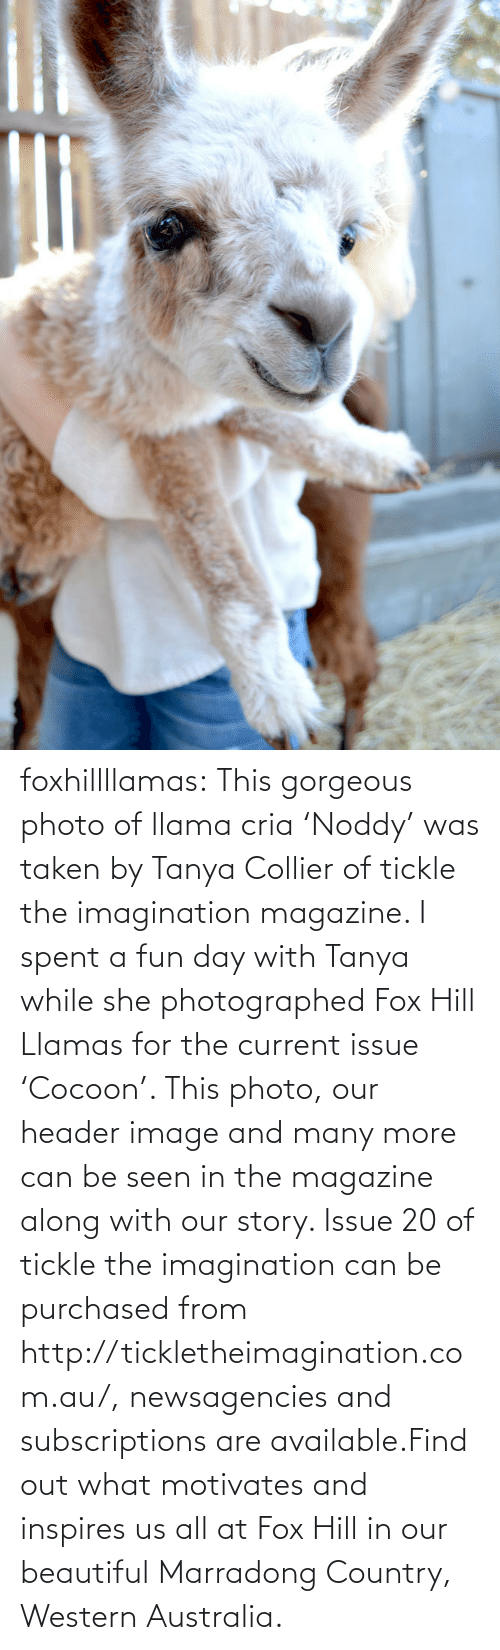 Header: foxhillllamas:  This gorgeous photo of llama cria 'Noddy' was taken by Tanya Collier of tickle the imagination magazine. I spent a fun day with Tanya while she photographed Fox Hill Llamas for the current issue 'Cocoon'. This photo, our header image and many more can be seen in the magazine along with our story. Issue 20 of tickle the imagination can be purchased from http://tickletheimagination.com.au/, newsagencies and subscriptions are available.Find out what motivates and inspires us all at Fox Hill in our beautiful Marradong Country, Western Australia.